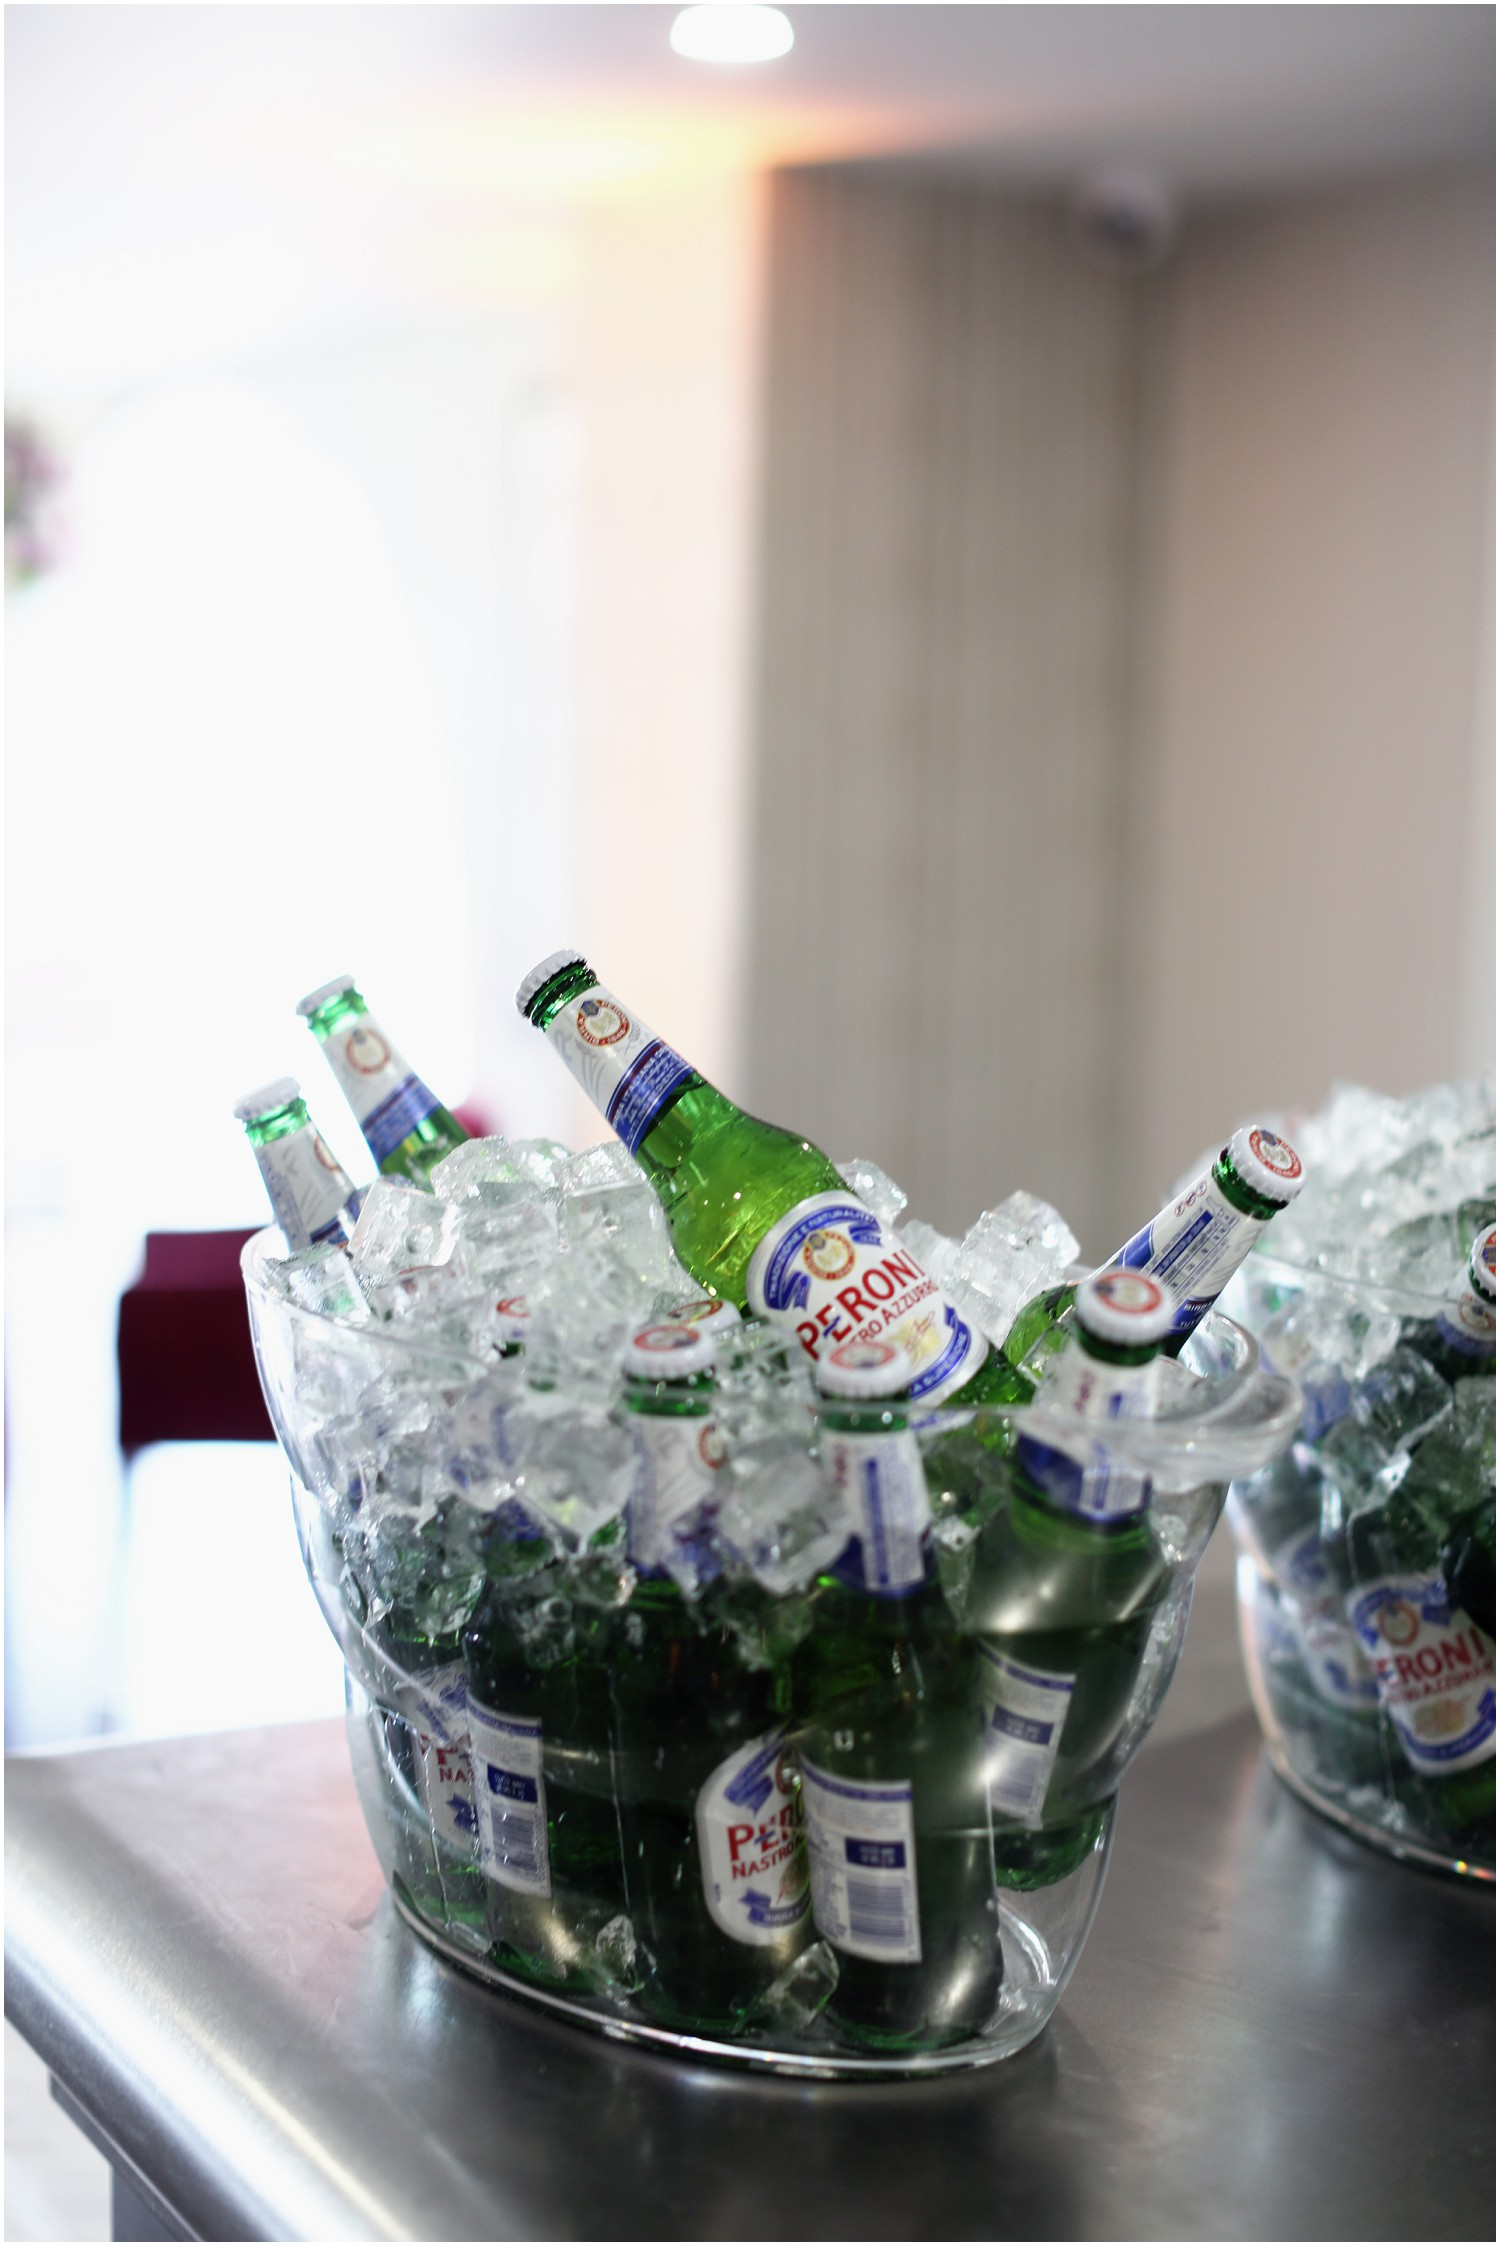 iced peroni beers